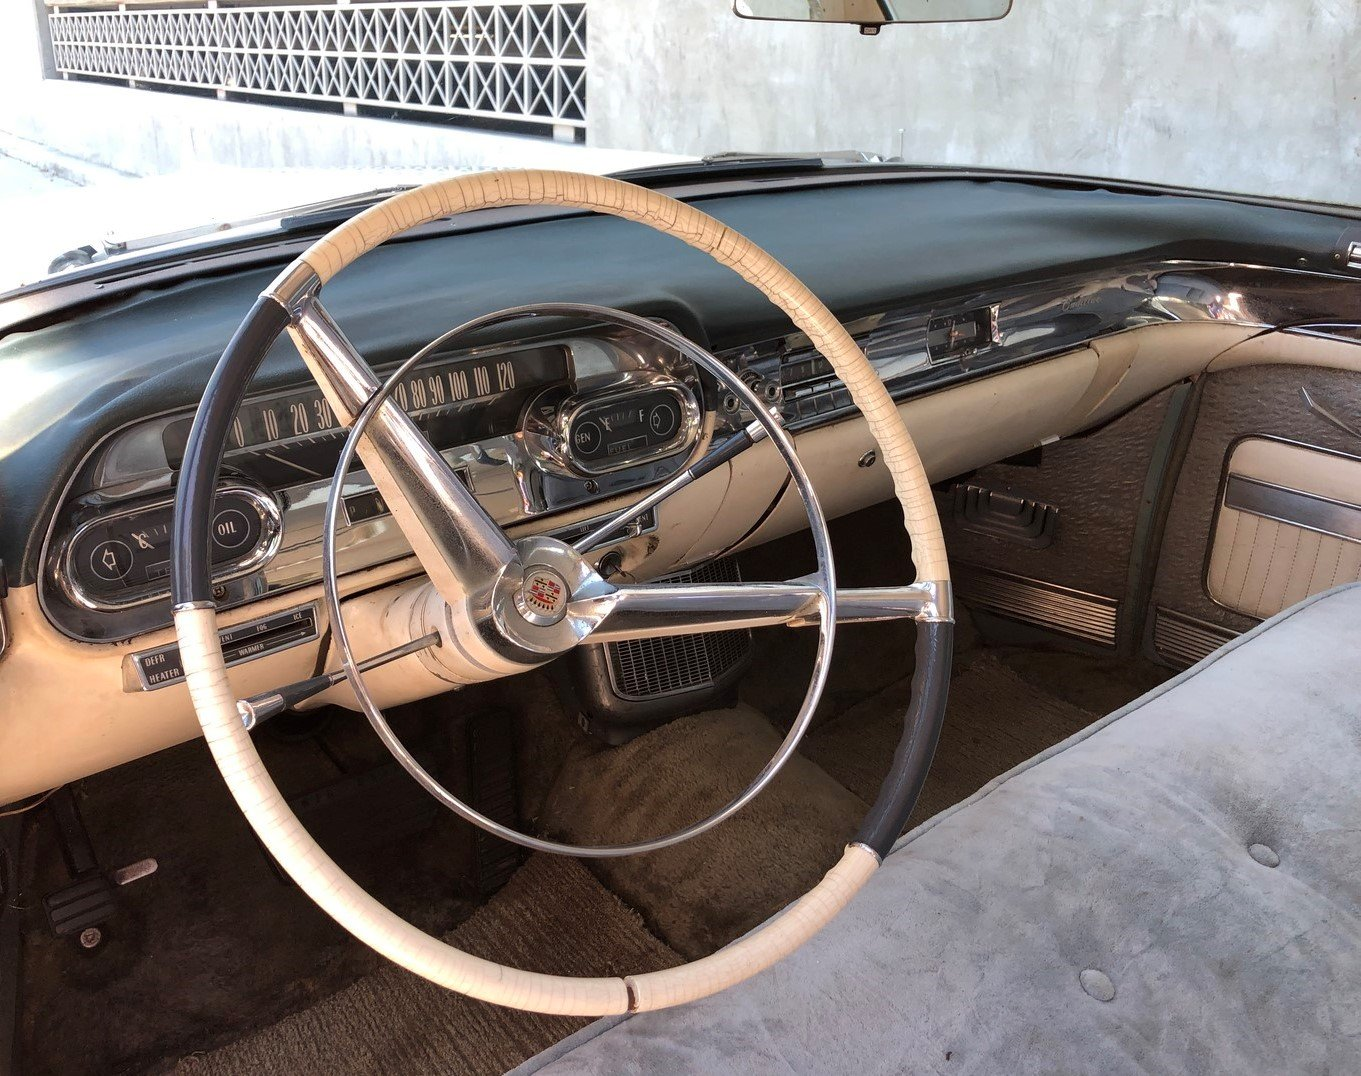 1957 CADILLAC SERIES 62 SEDAN DEVILLE For Sale (picture 3 of 6)